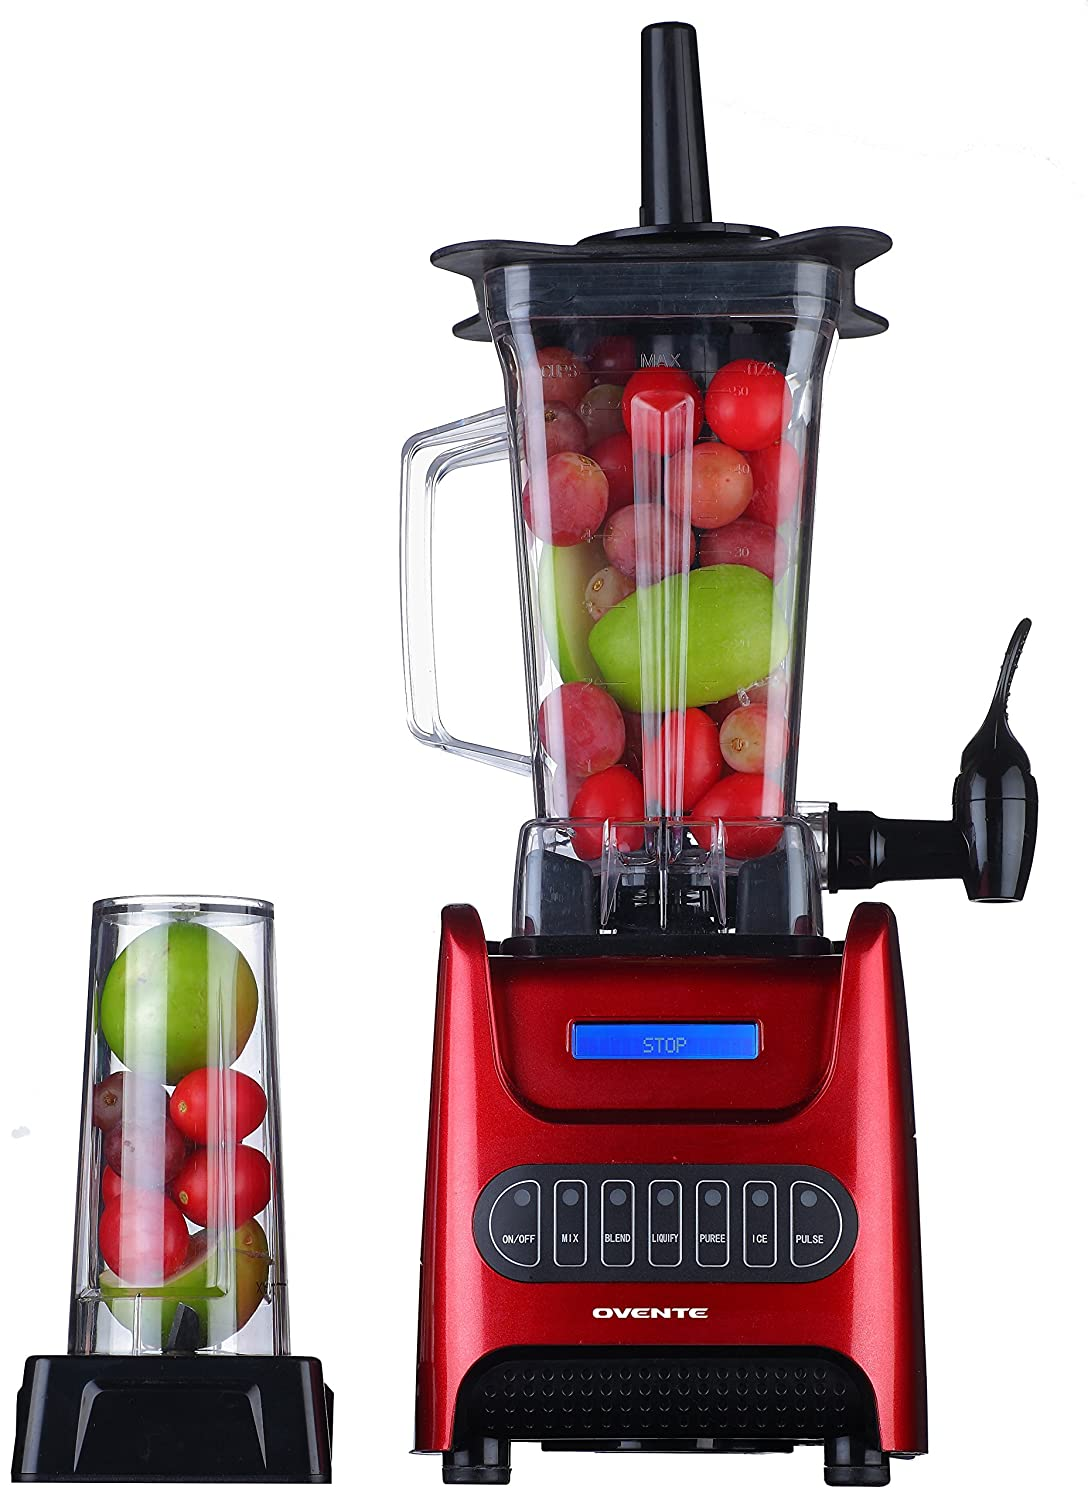 OVENTE BLH1000R Electric Countertop Smoothie Maker Blender with Dispenser, 1000 Watts, Large Jug & Travel Jar, Red